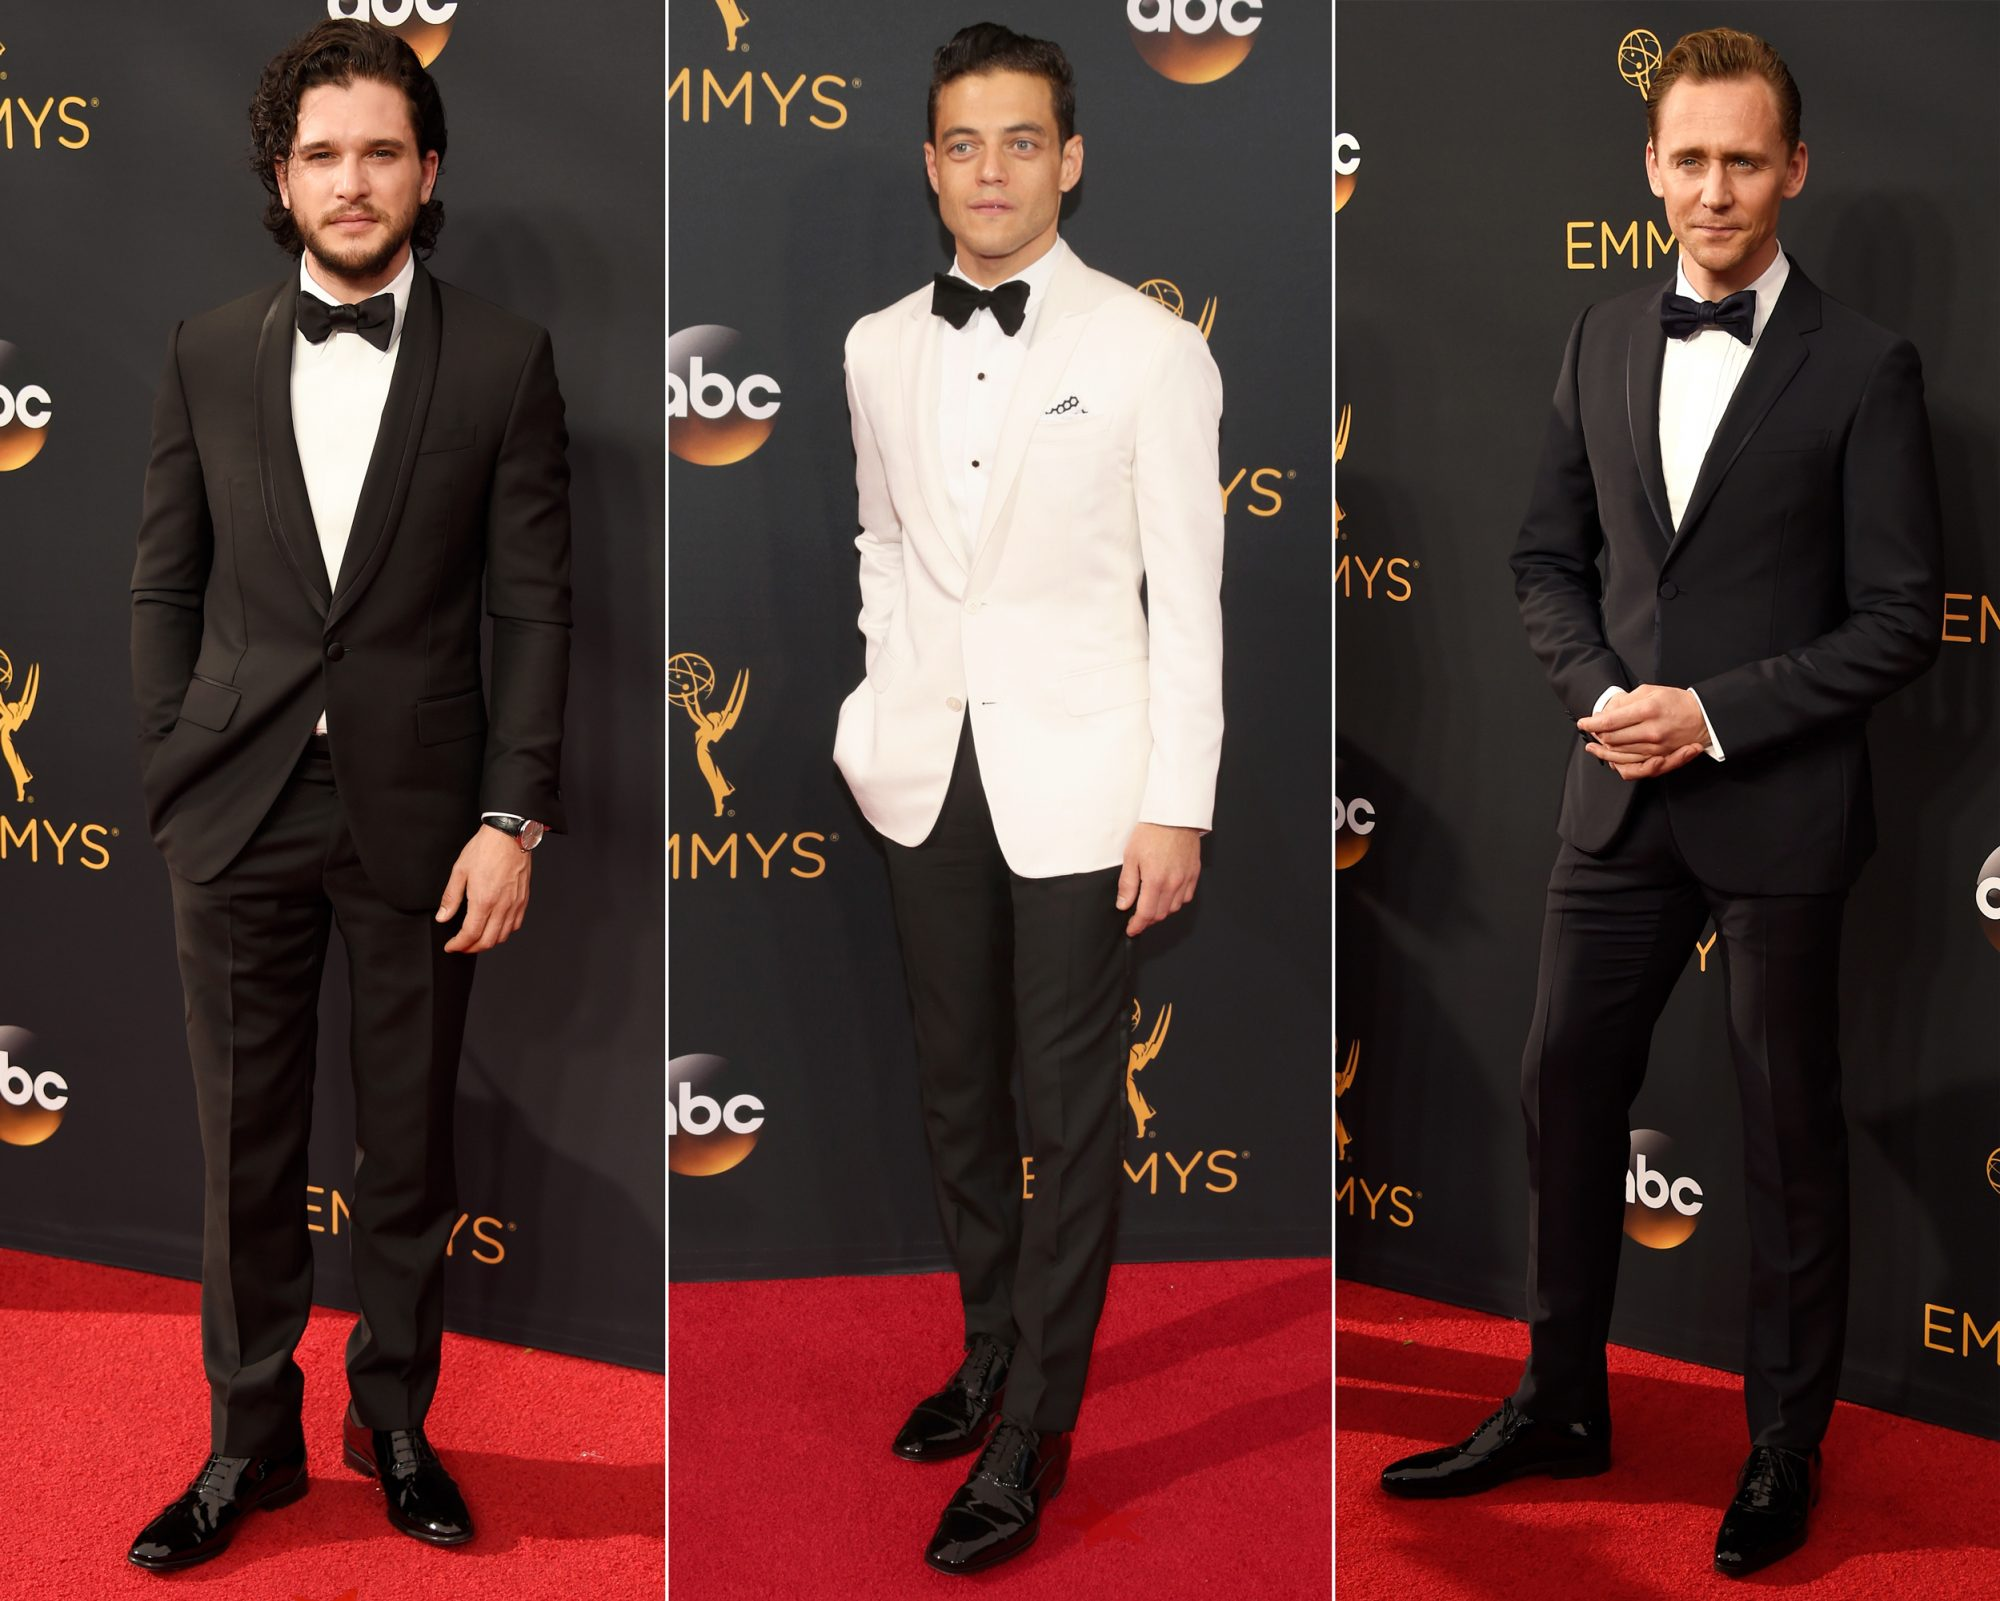 Emmy's Hottest Men - LEAD